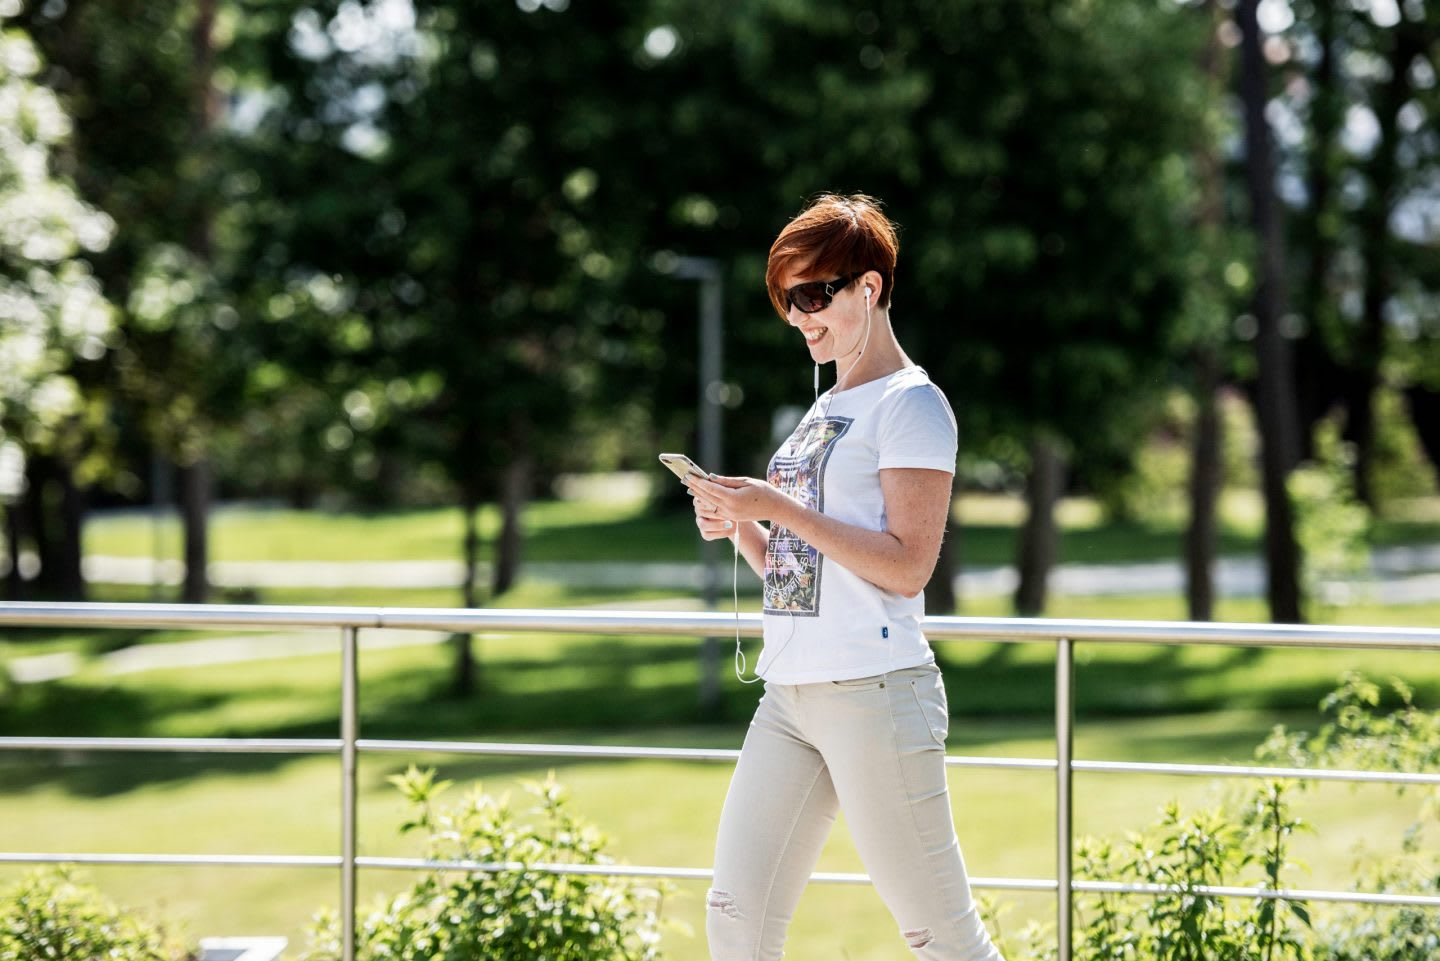 Woman in white t-shirt walking outdoors while looking at phone, nature, green, break